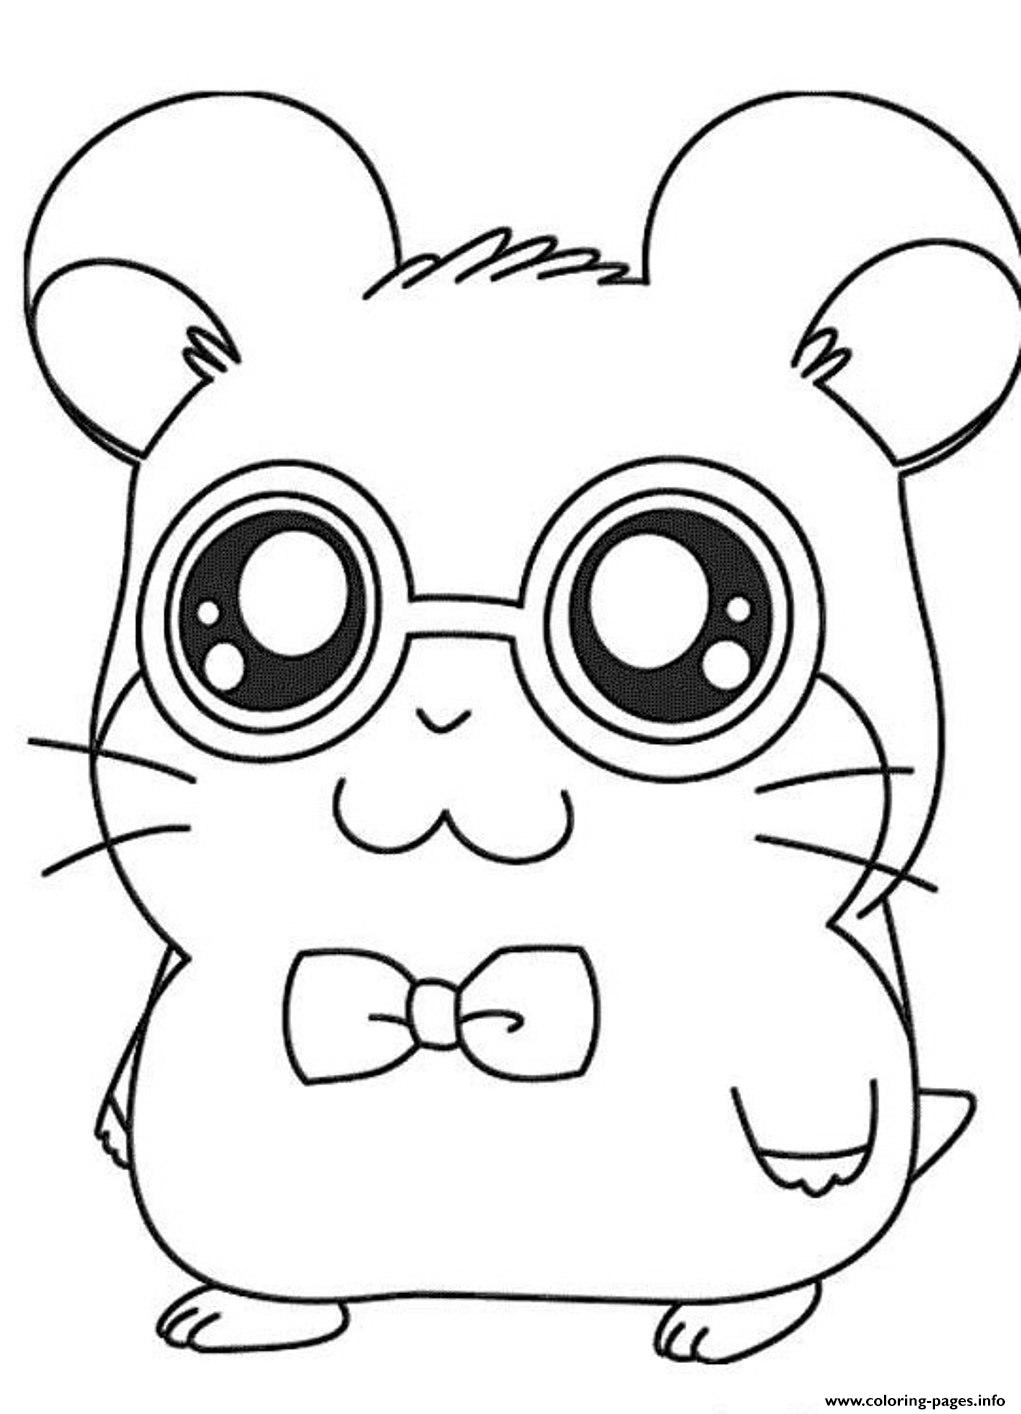 Christmas Hamster Coloring Pages With Cute Dexter Hamtaro S3b70 Printable